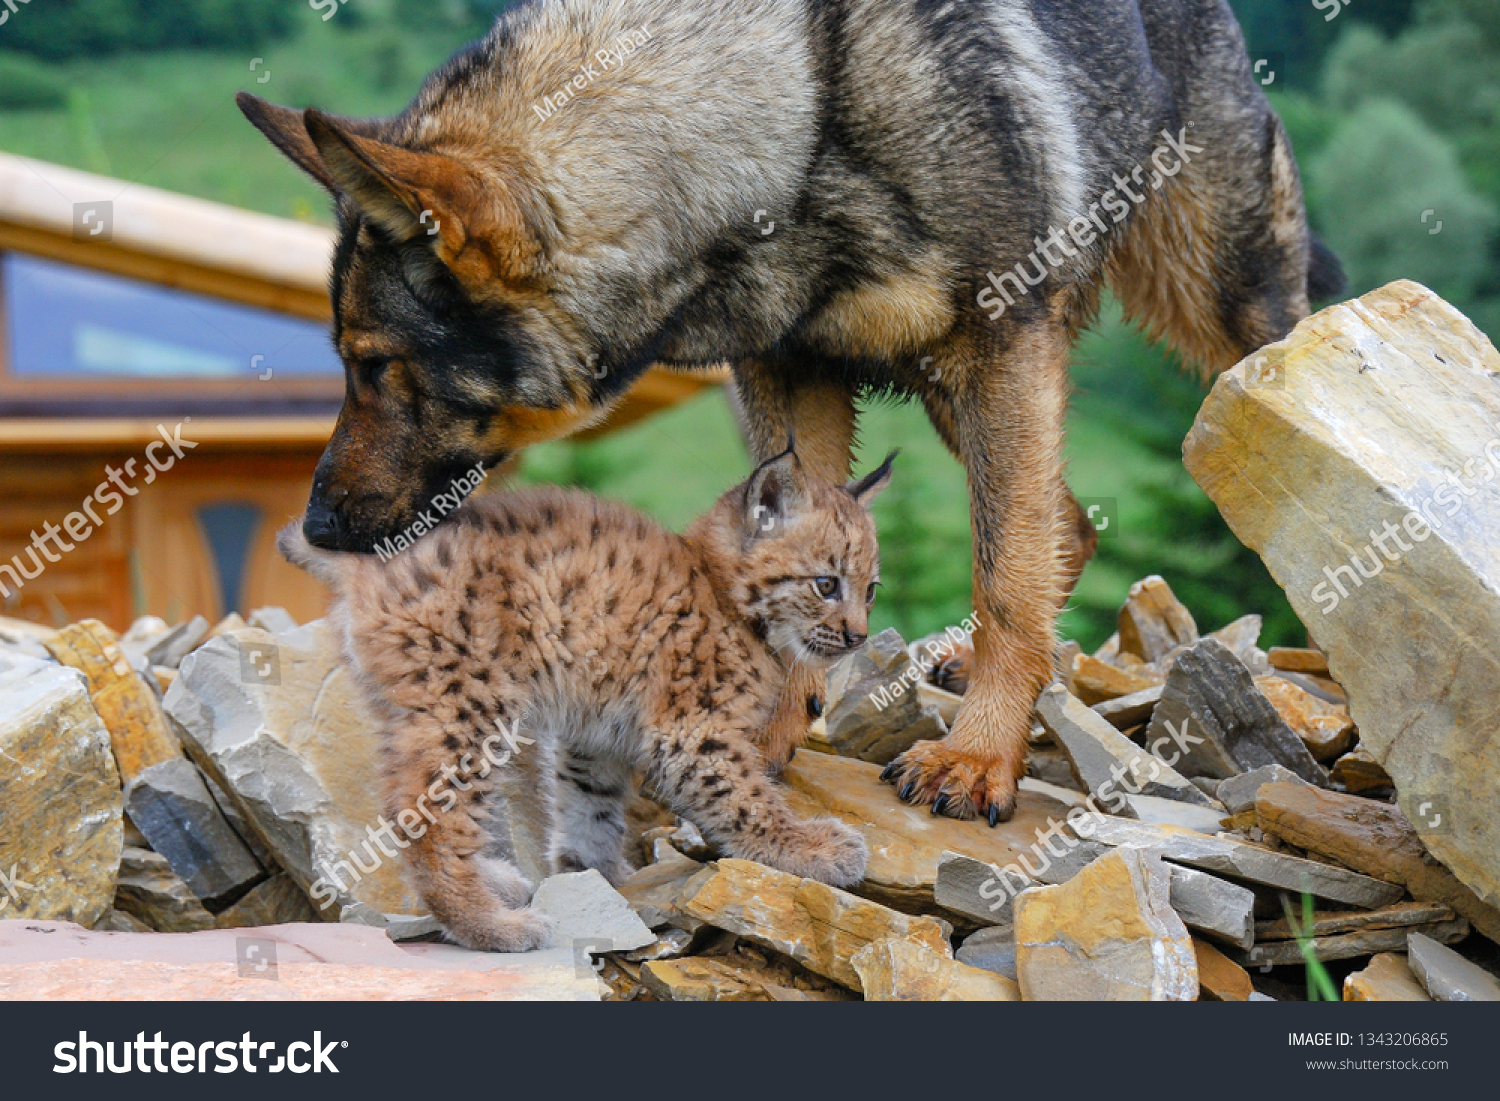 Wild Eurasian lynx (Lynx lynx) in its natural environment deep in the forests raised by german shepherd dog. Cub exploring surrounding habitat. Spring day. Cub preparing to release to wild. Slovakia.